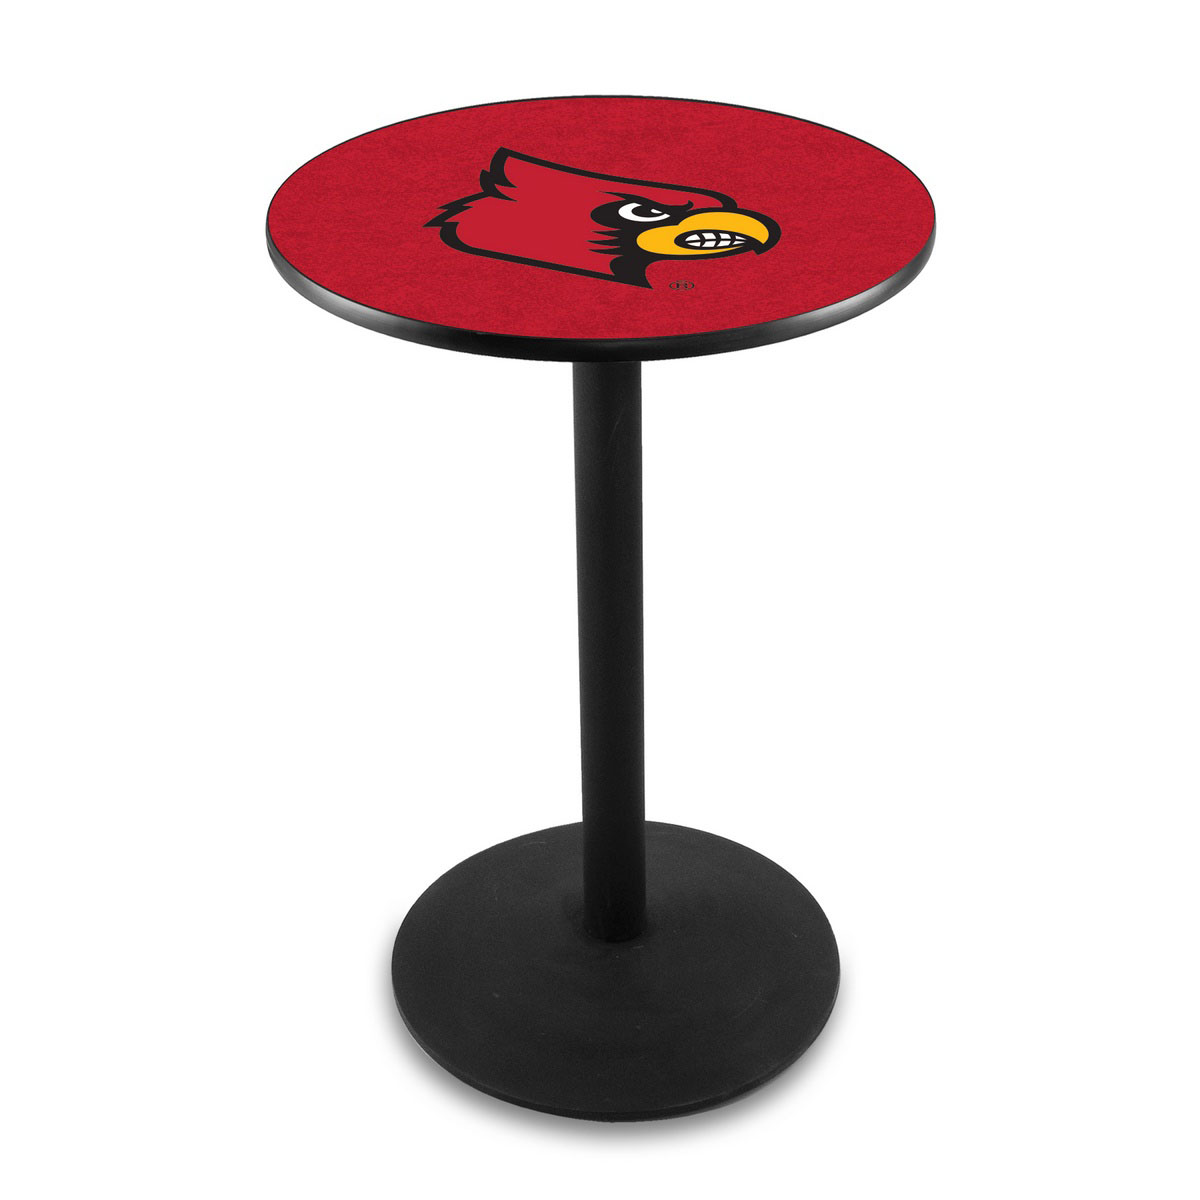 Design University Louisville Logo Pub Bar Table Round Stand Product Photo